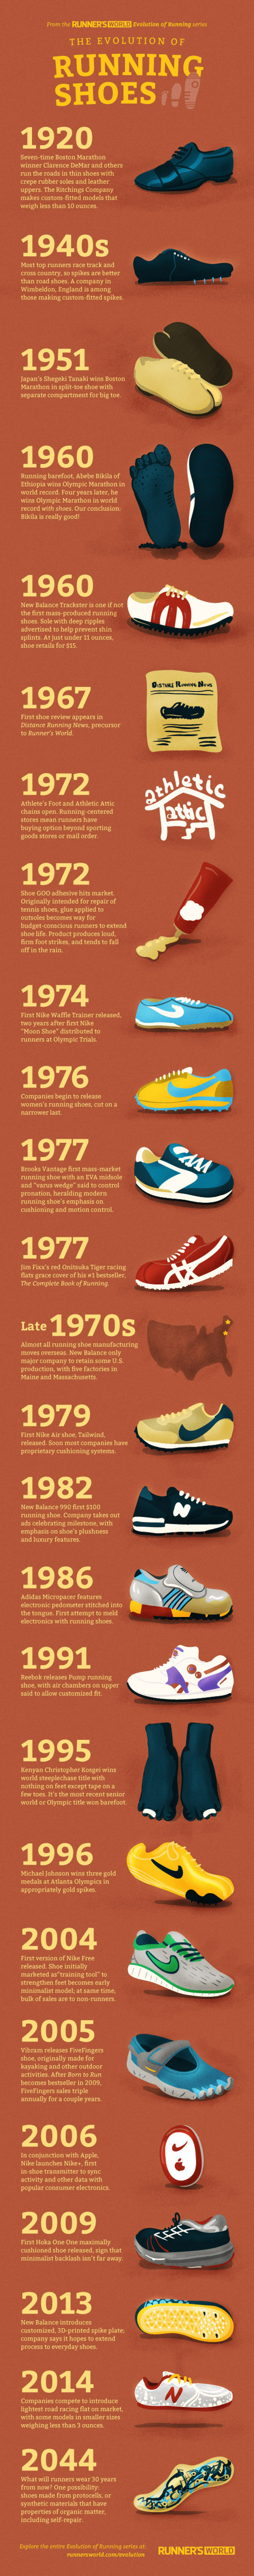 The Evolution of Running Shoes Infographic